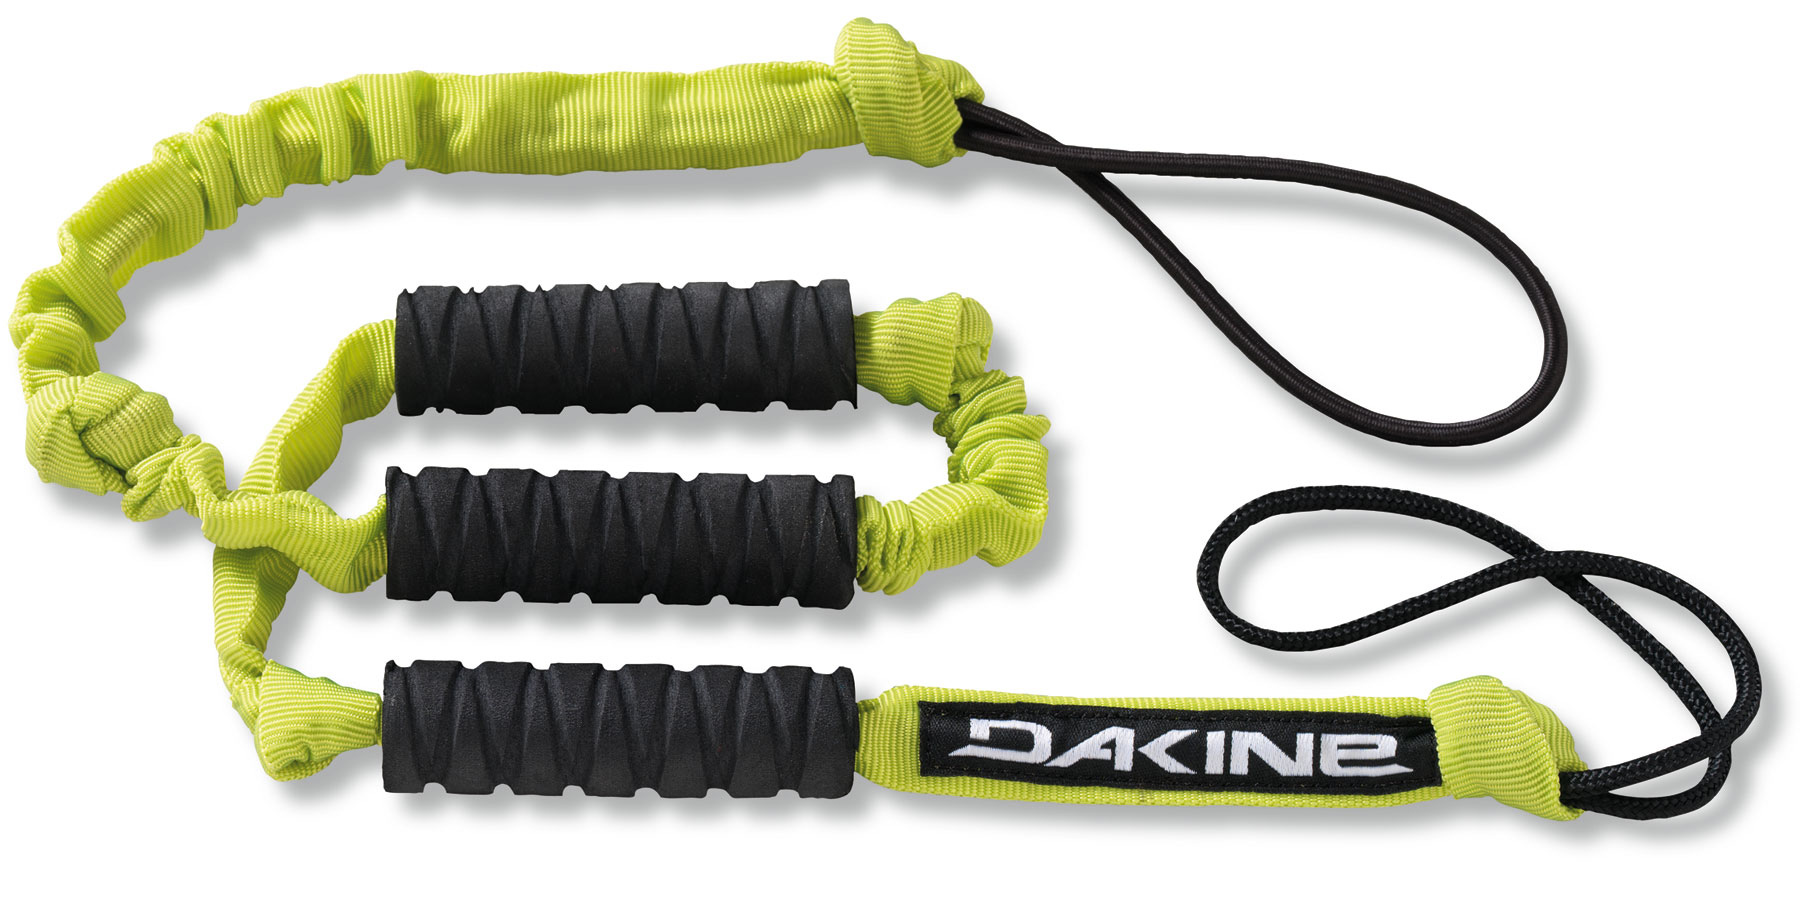 "Wake Oversized grips for maximum power while up-hauling.Key Features of the Dakine Power Uphaul: Internal bungee system holds tight to the mast Oversized EVA grips for maximum uphauling power 52"" [ 132cm ] Length - $12.95"